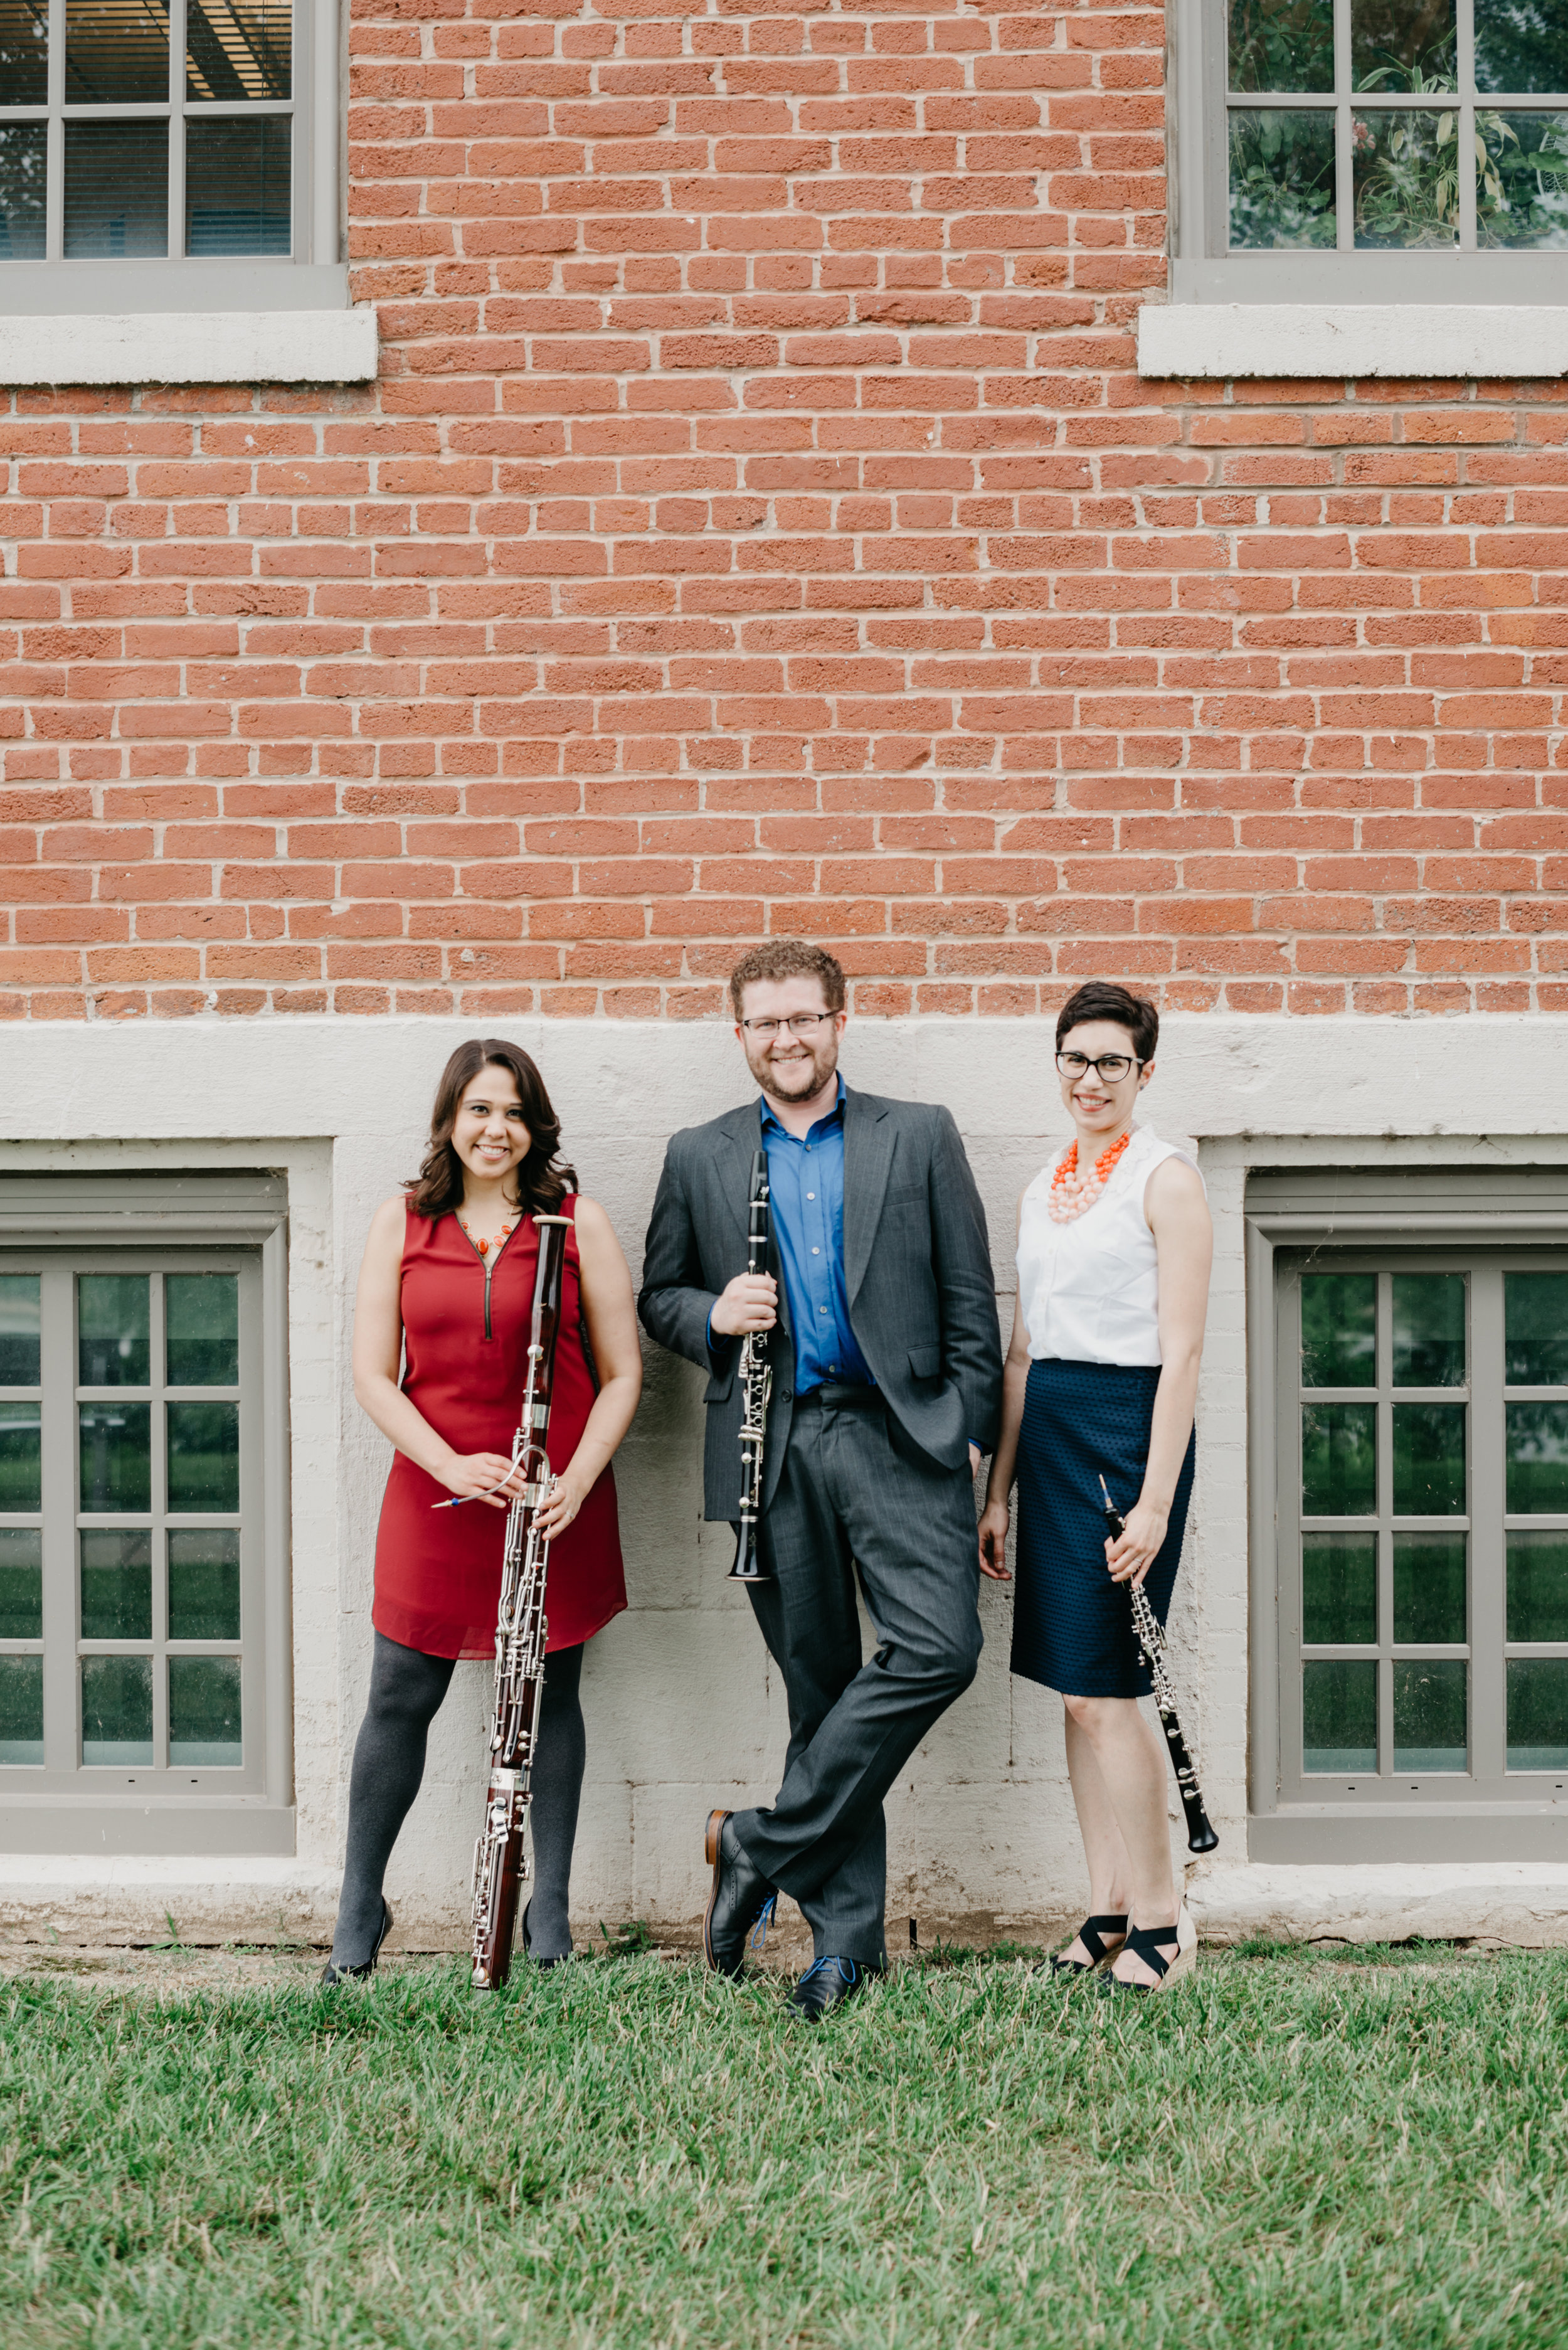 Driftless Winds Reed Trio: Jacqui, Corey, and Galit